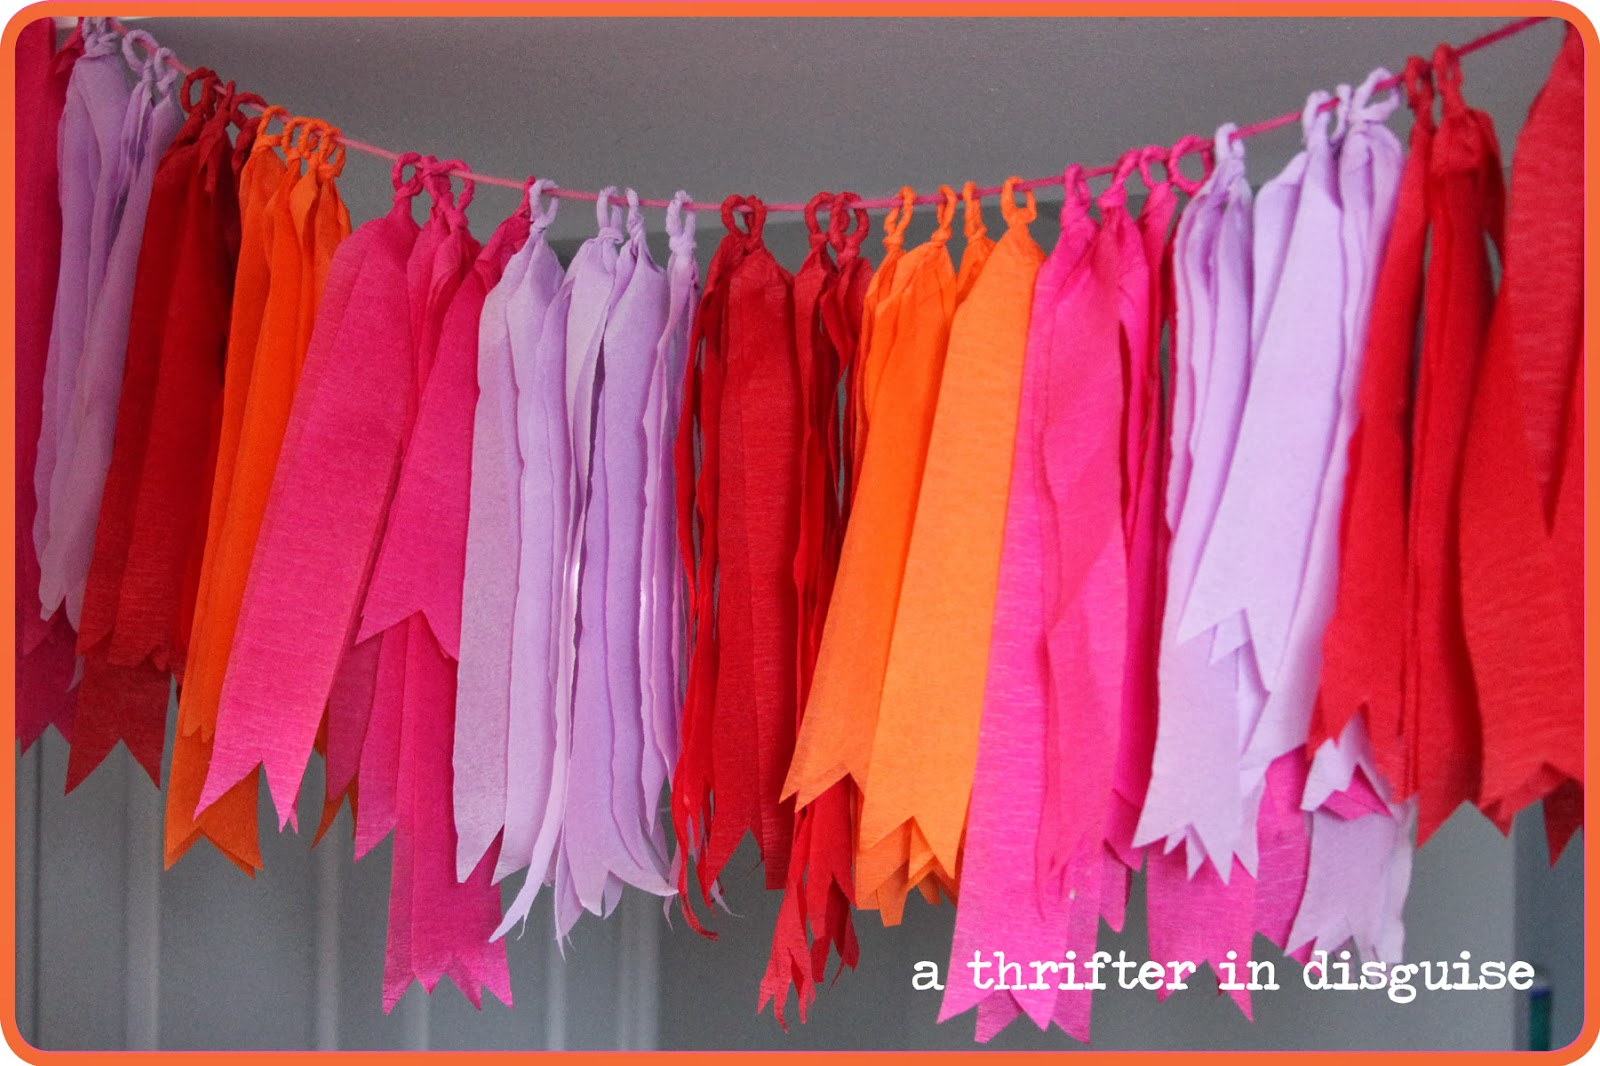 A thrifter in disguise diy crepe paper party banner - Birthday decorations with crepe paper ...